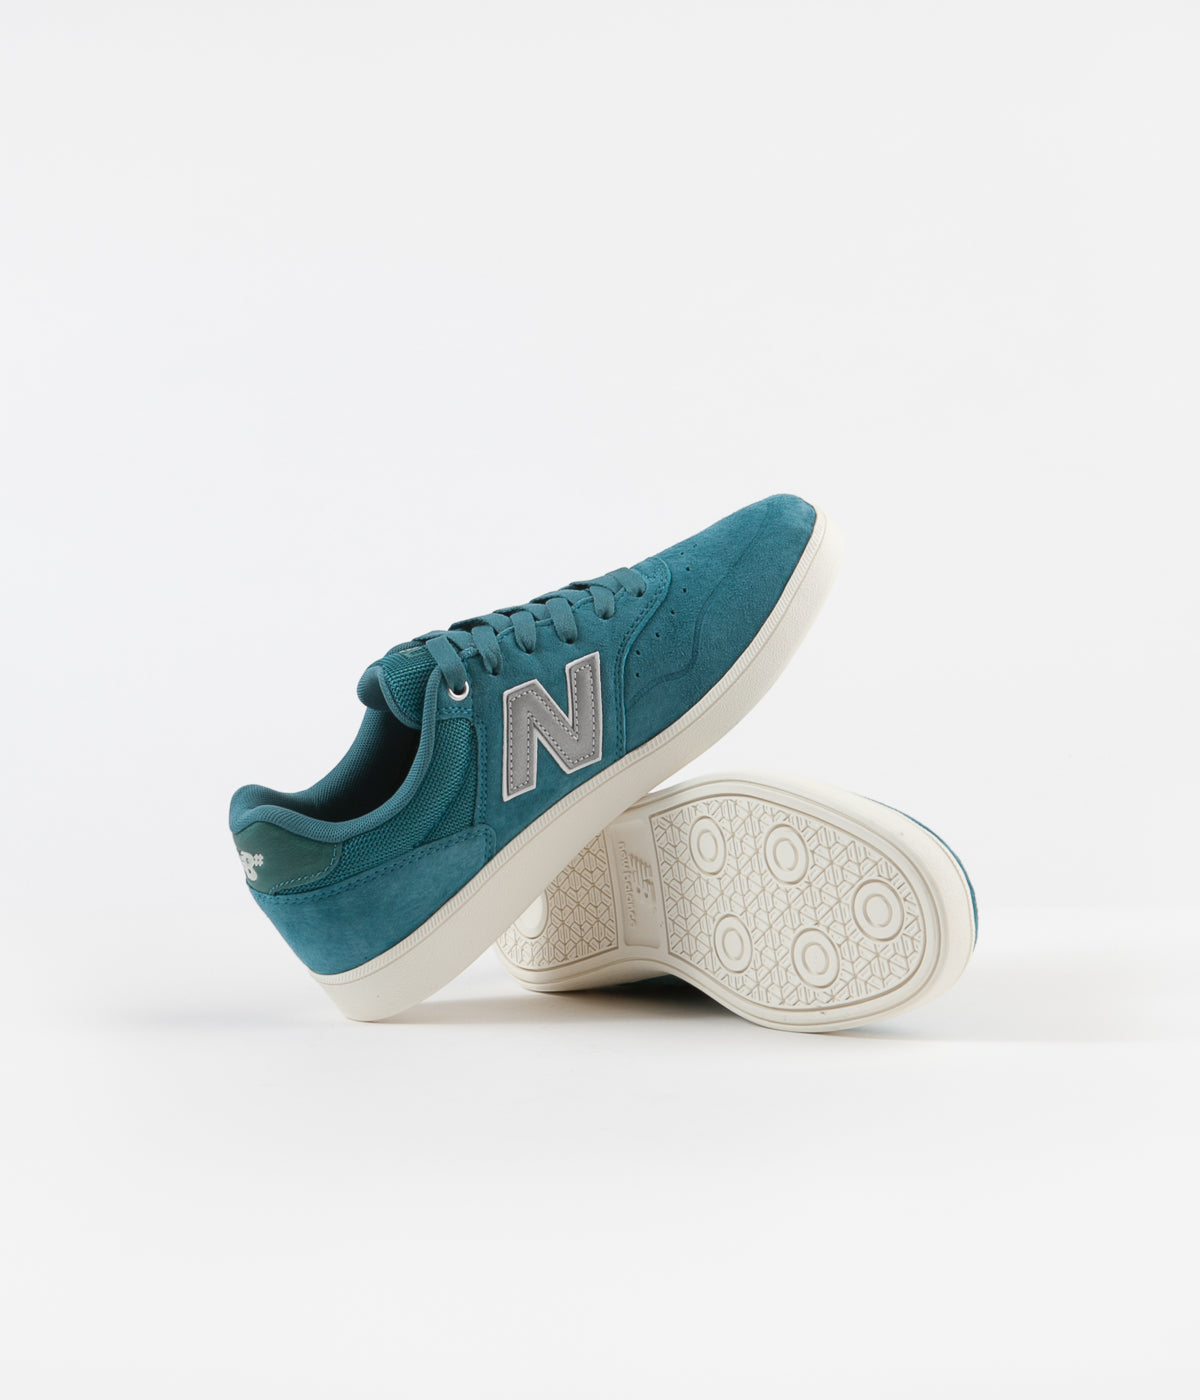 New Balance Numeric 288 Shoes - Evergreen / Sea Salt